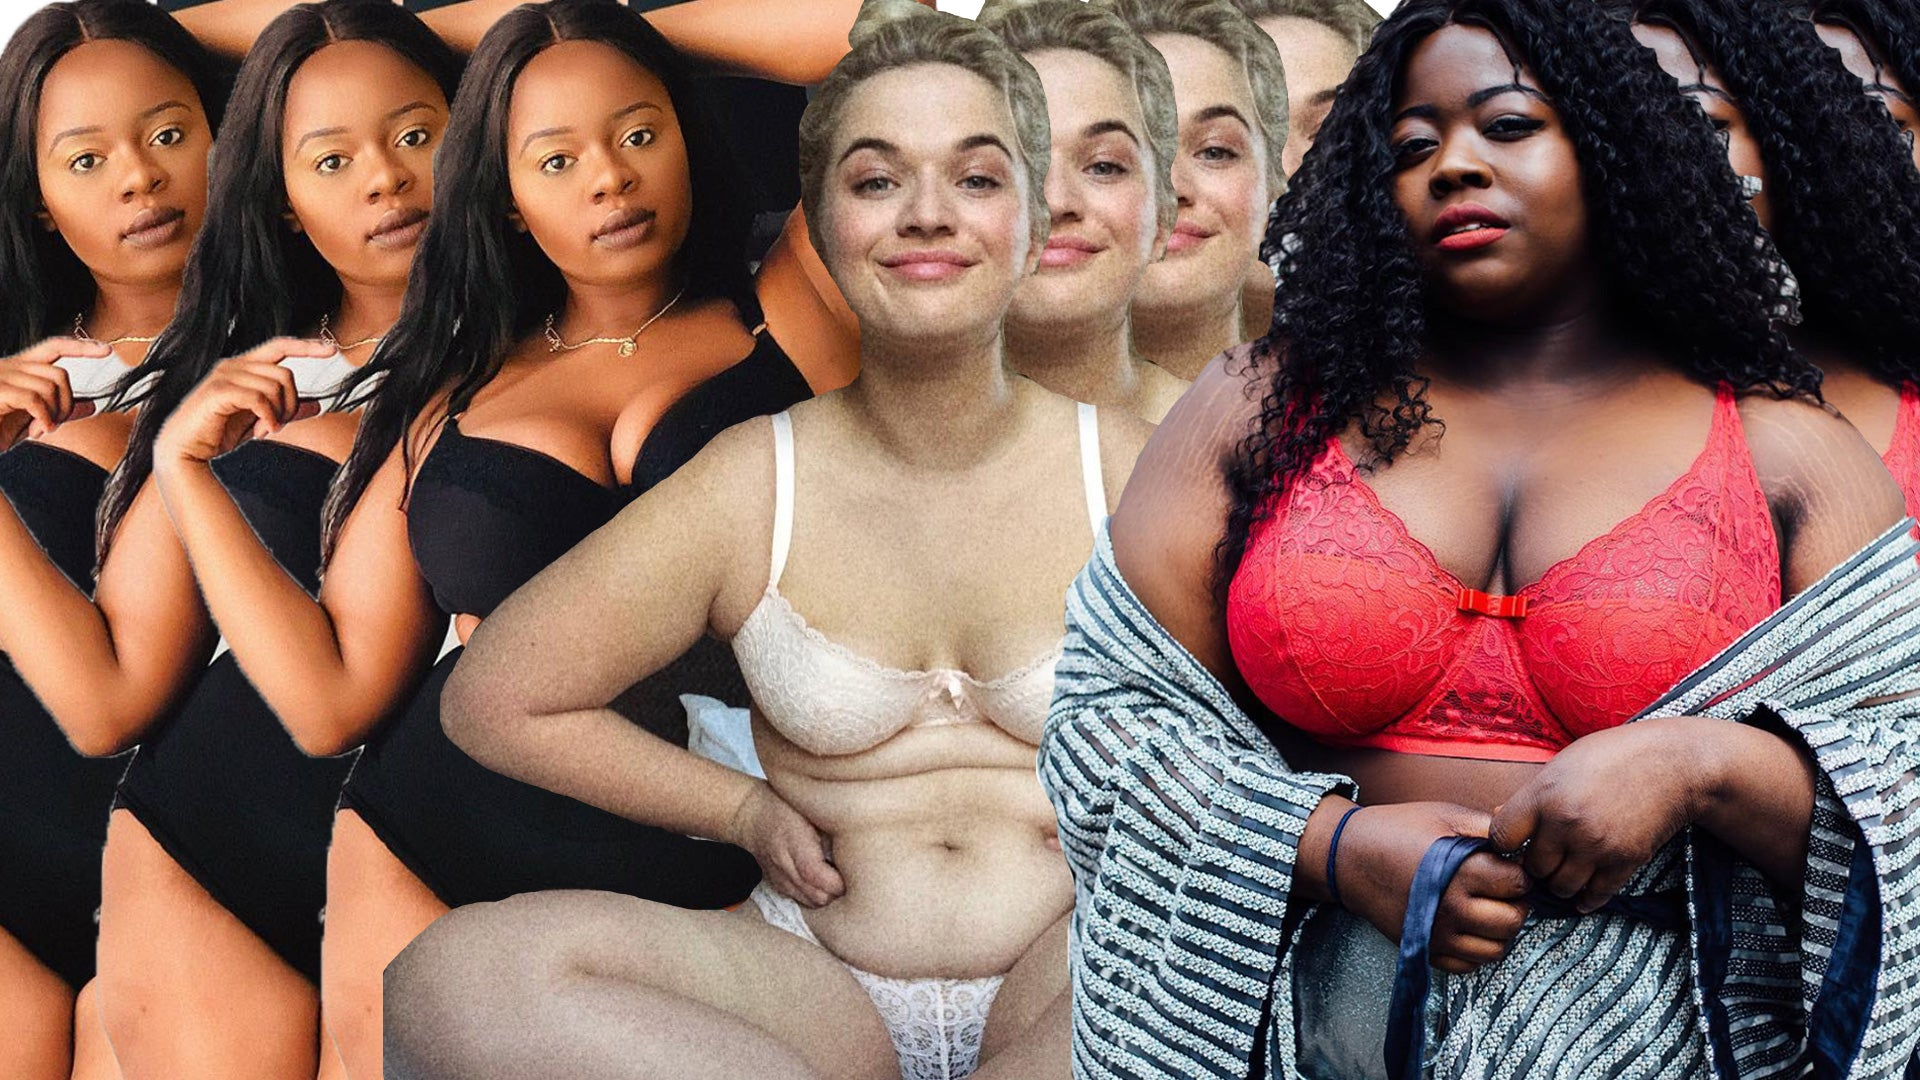 11 body positive Instagram accounts you need to follow